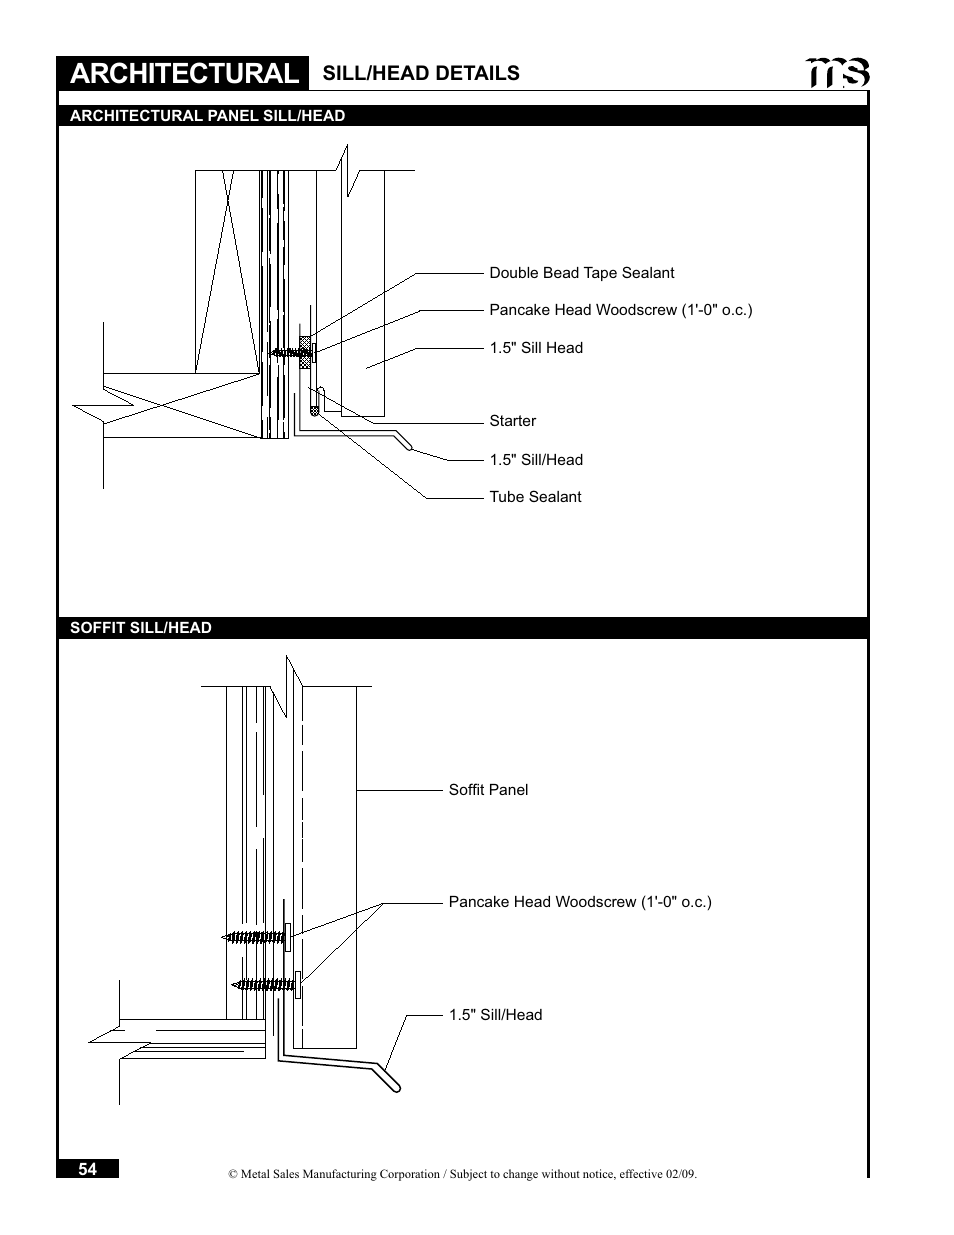 Architectural, Sill/head details | Metal Sales Soffit Panel User Manual |  Page 55